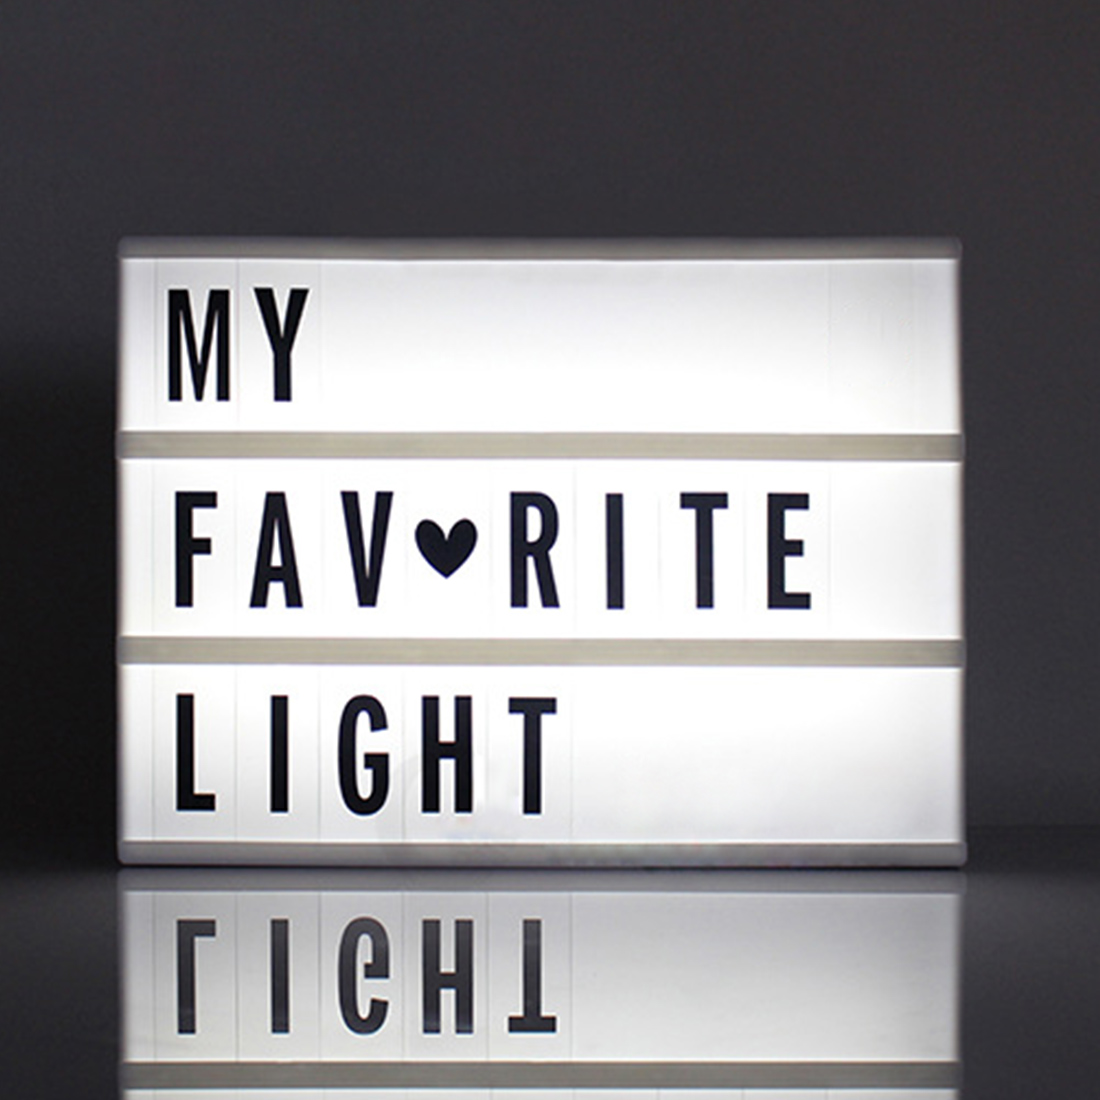 A6 Creative Cinema LED  Porch Light Up Sign Box Lightbox Message Board Letter Cinematic LED Symbol Home Party Wedding Lamp Decor